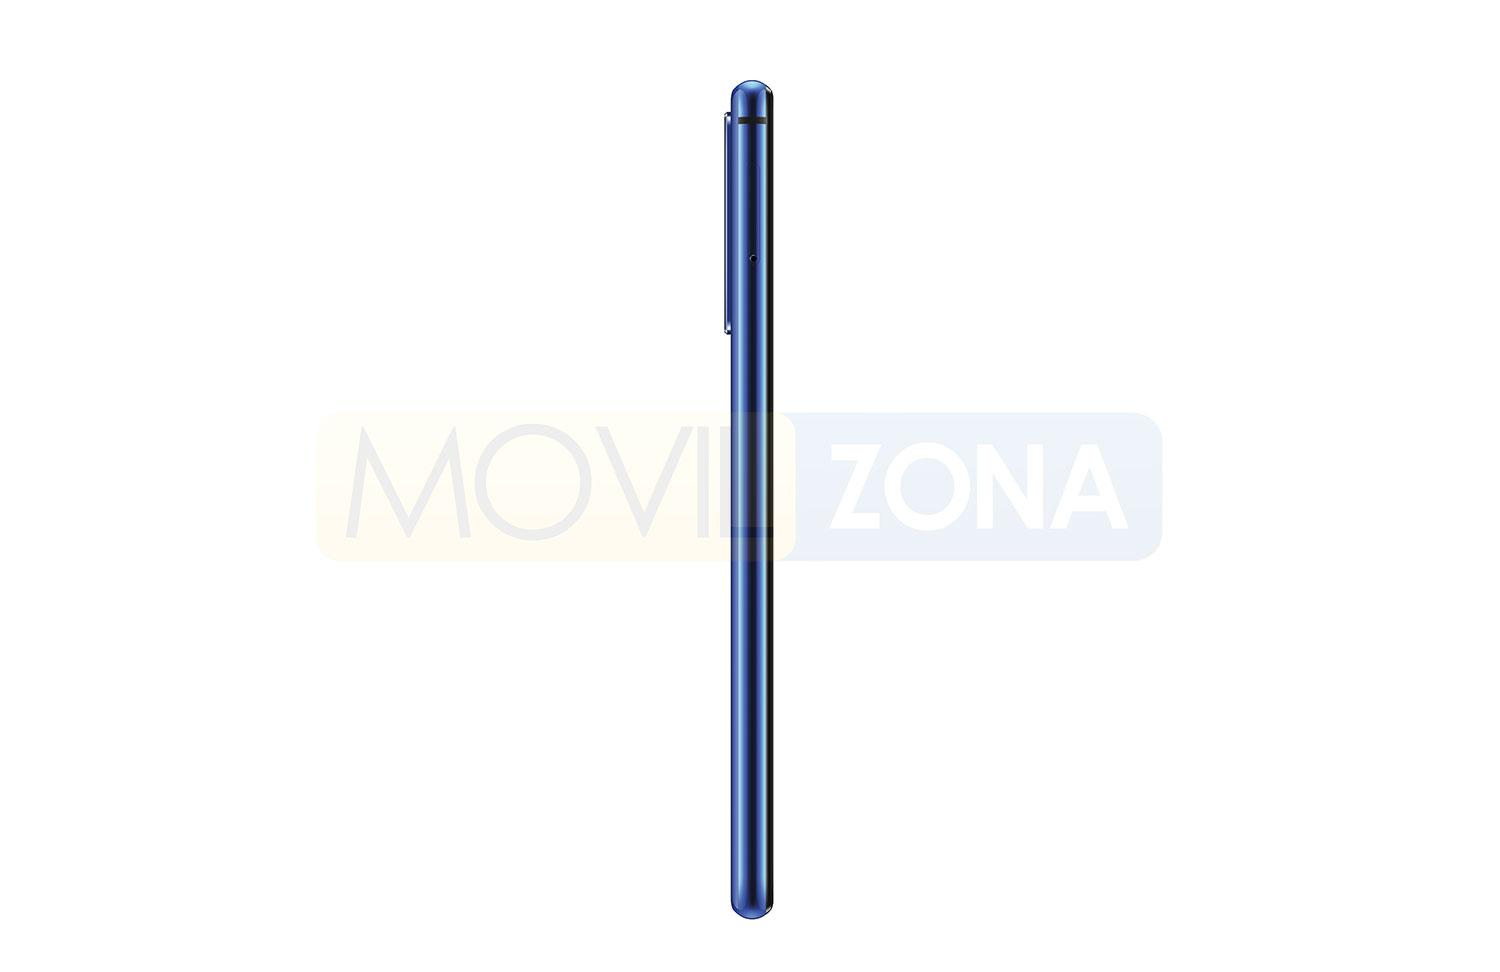 Honor 20 lateral